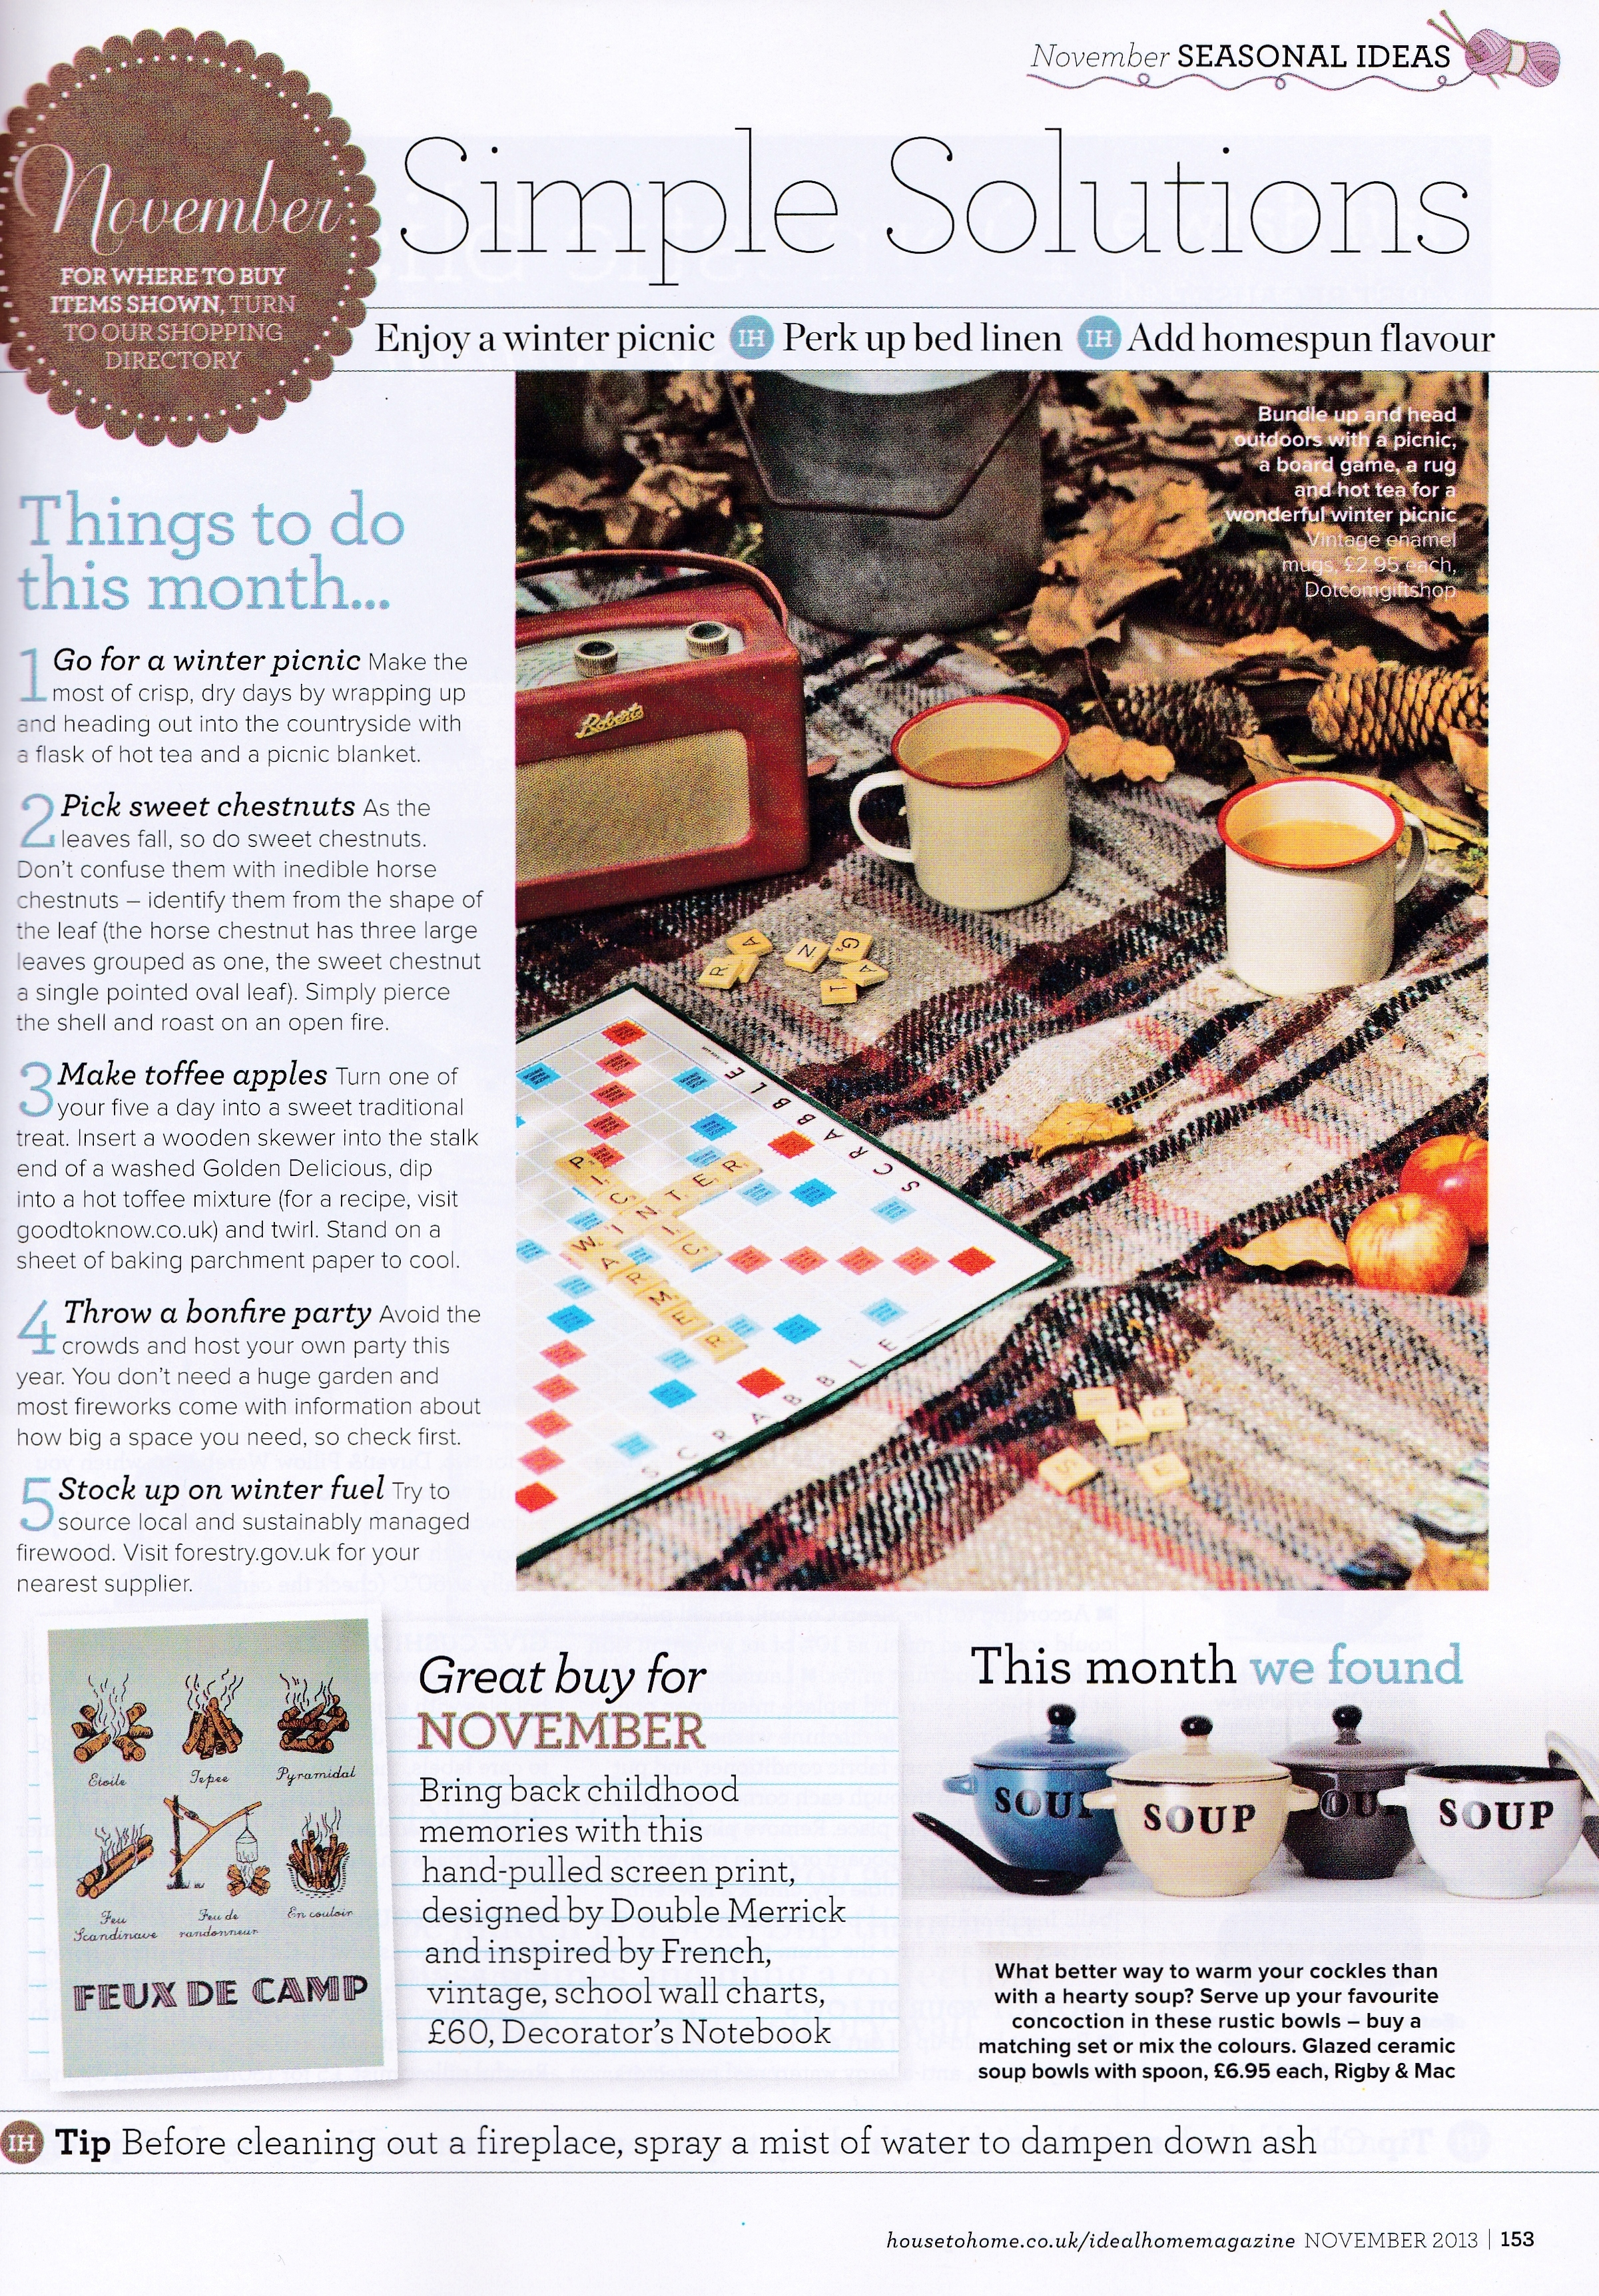 Decorator's Notebook in Ideal Home Nov 2013 issue